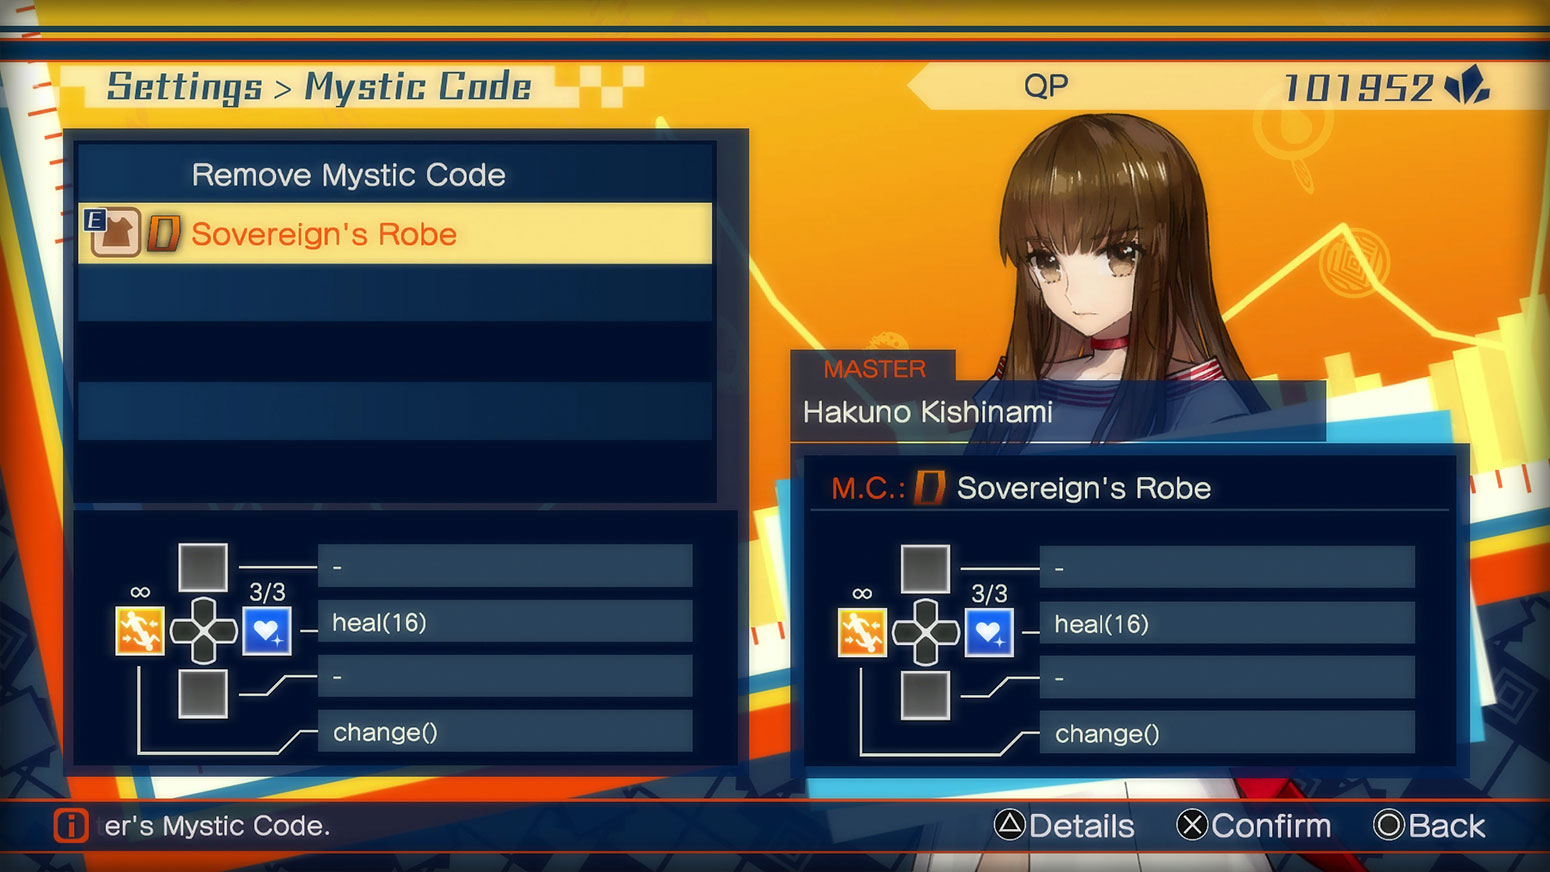 Fate/EXTELLA: The Umbral Star -  Mystic Codes Screenshot 1